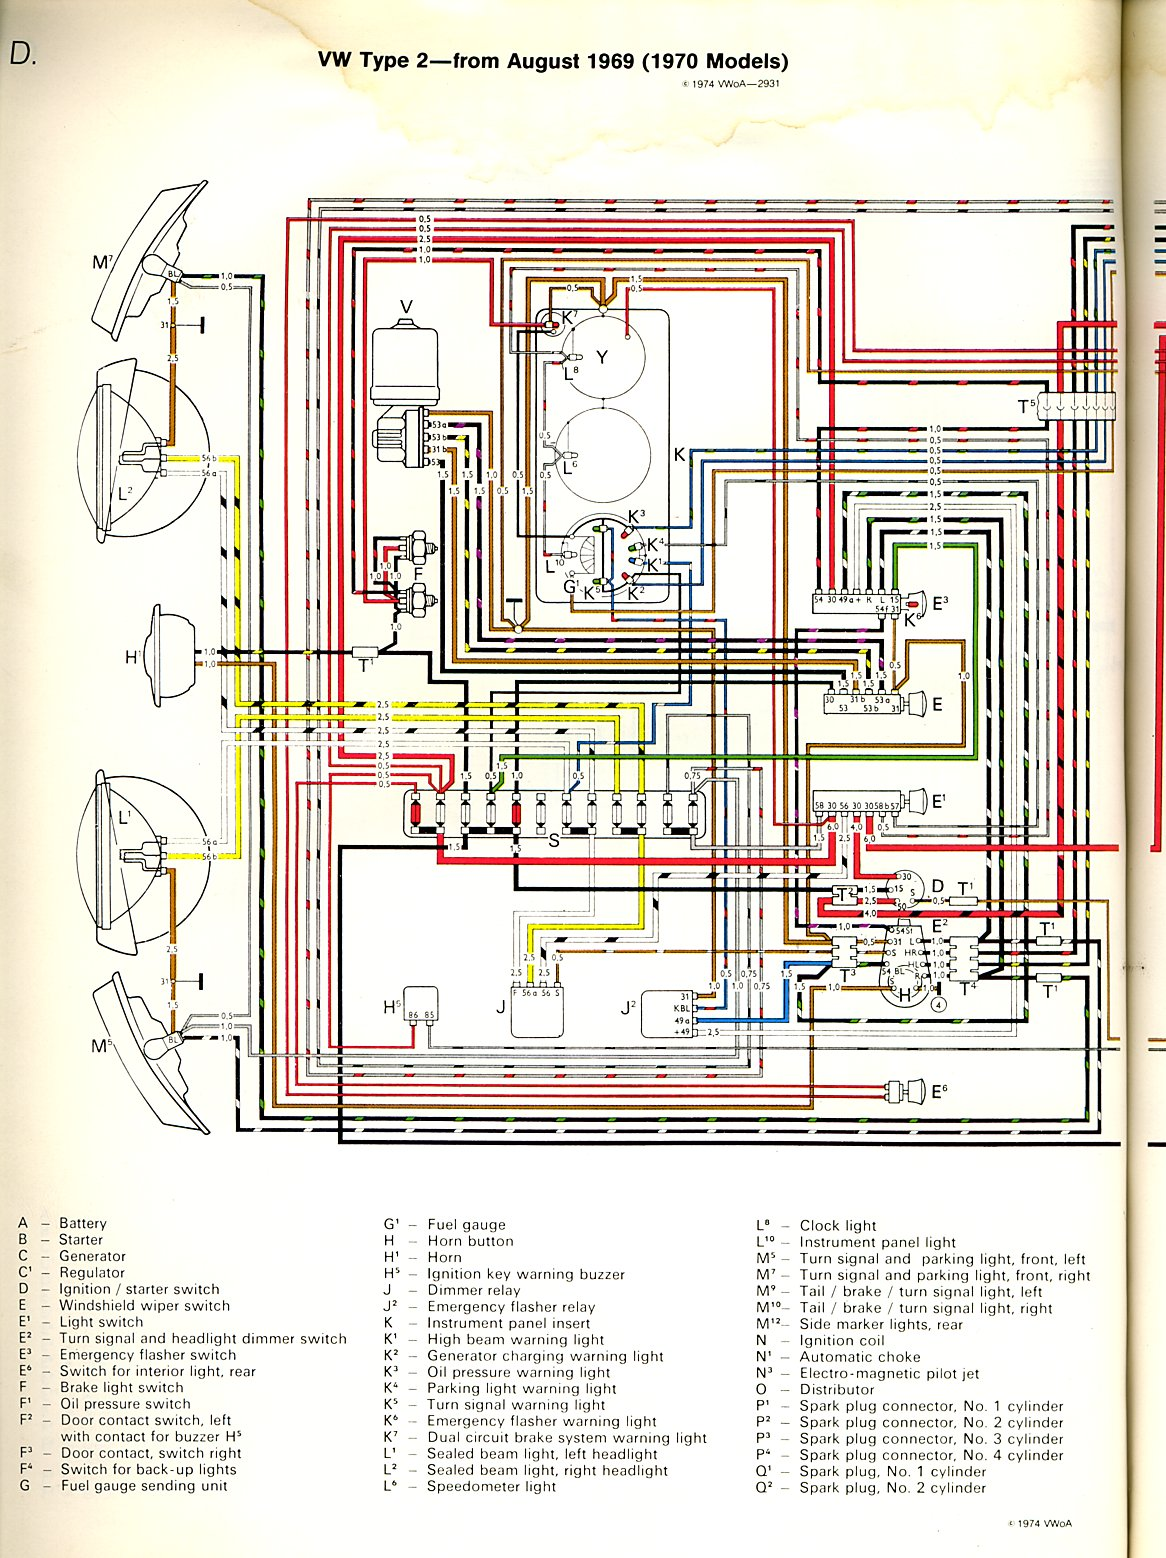 baybus_70a thesamba com type 2 wiring diagrams VW Wiring Harness Diagram at edmiracle.co